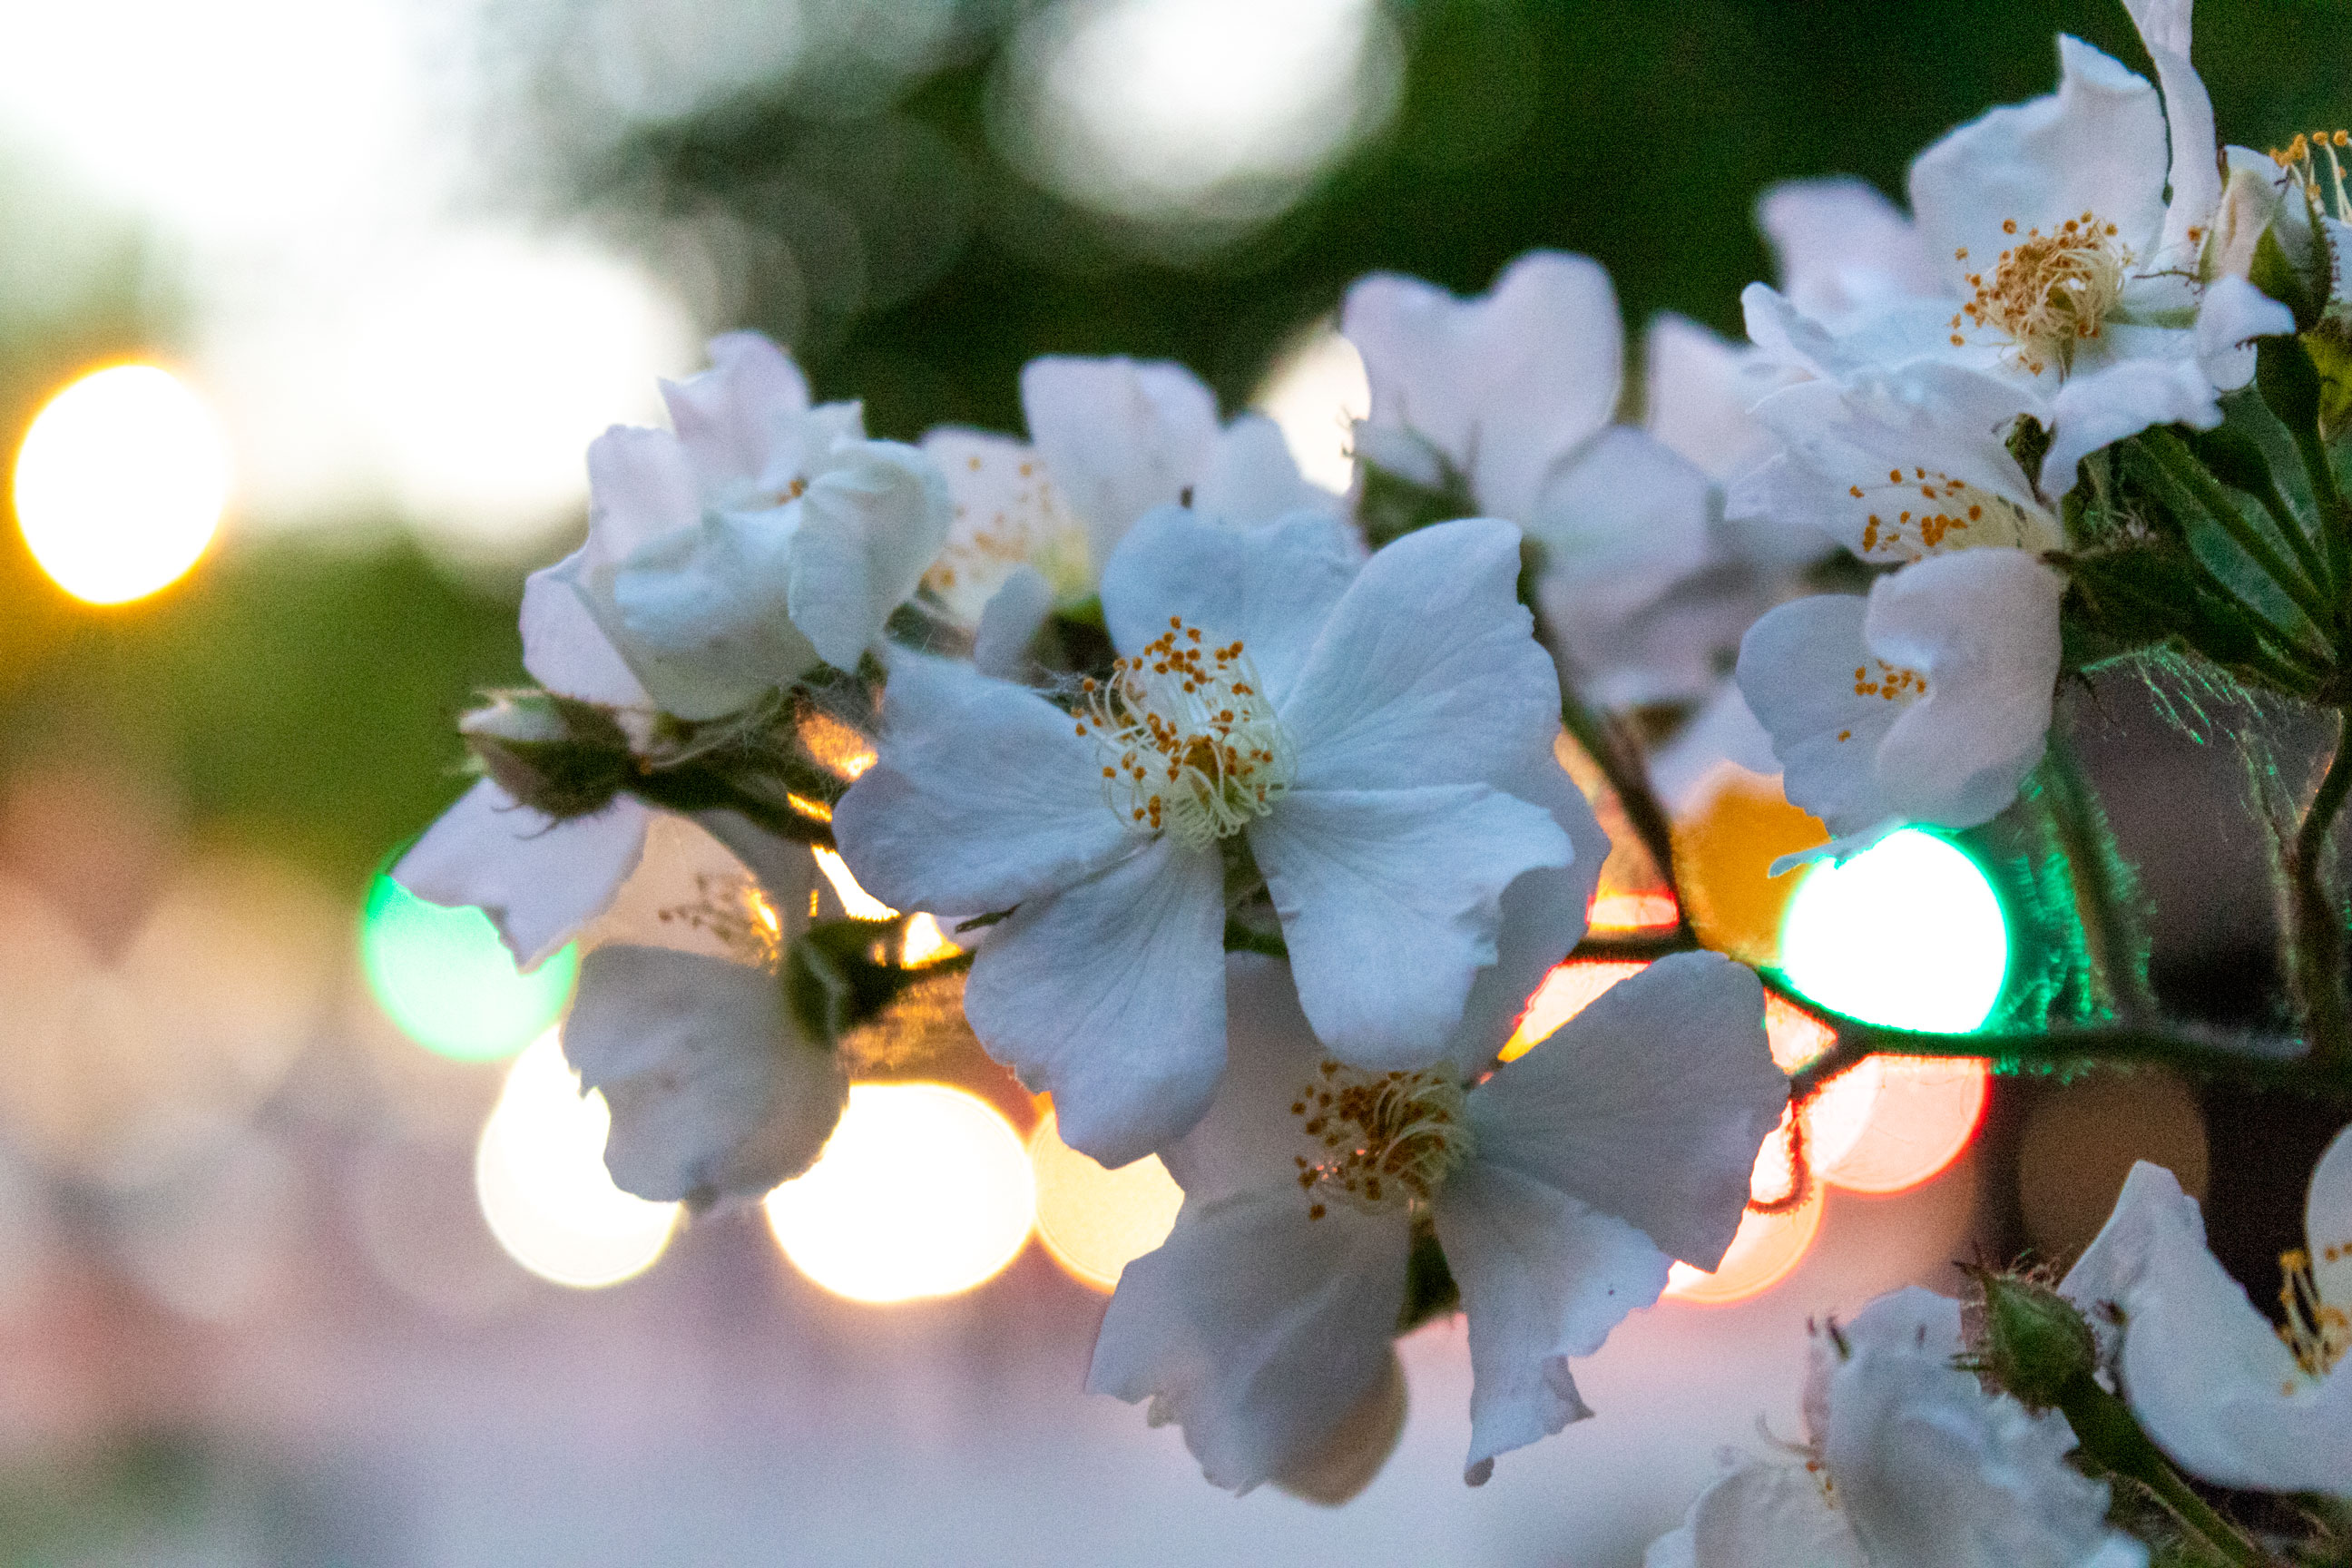 White flowers with splotches of colourful light behind them